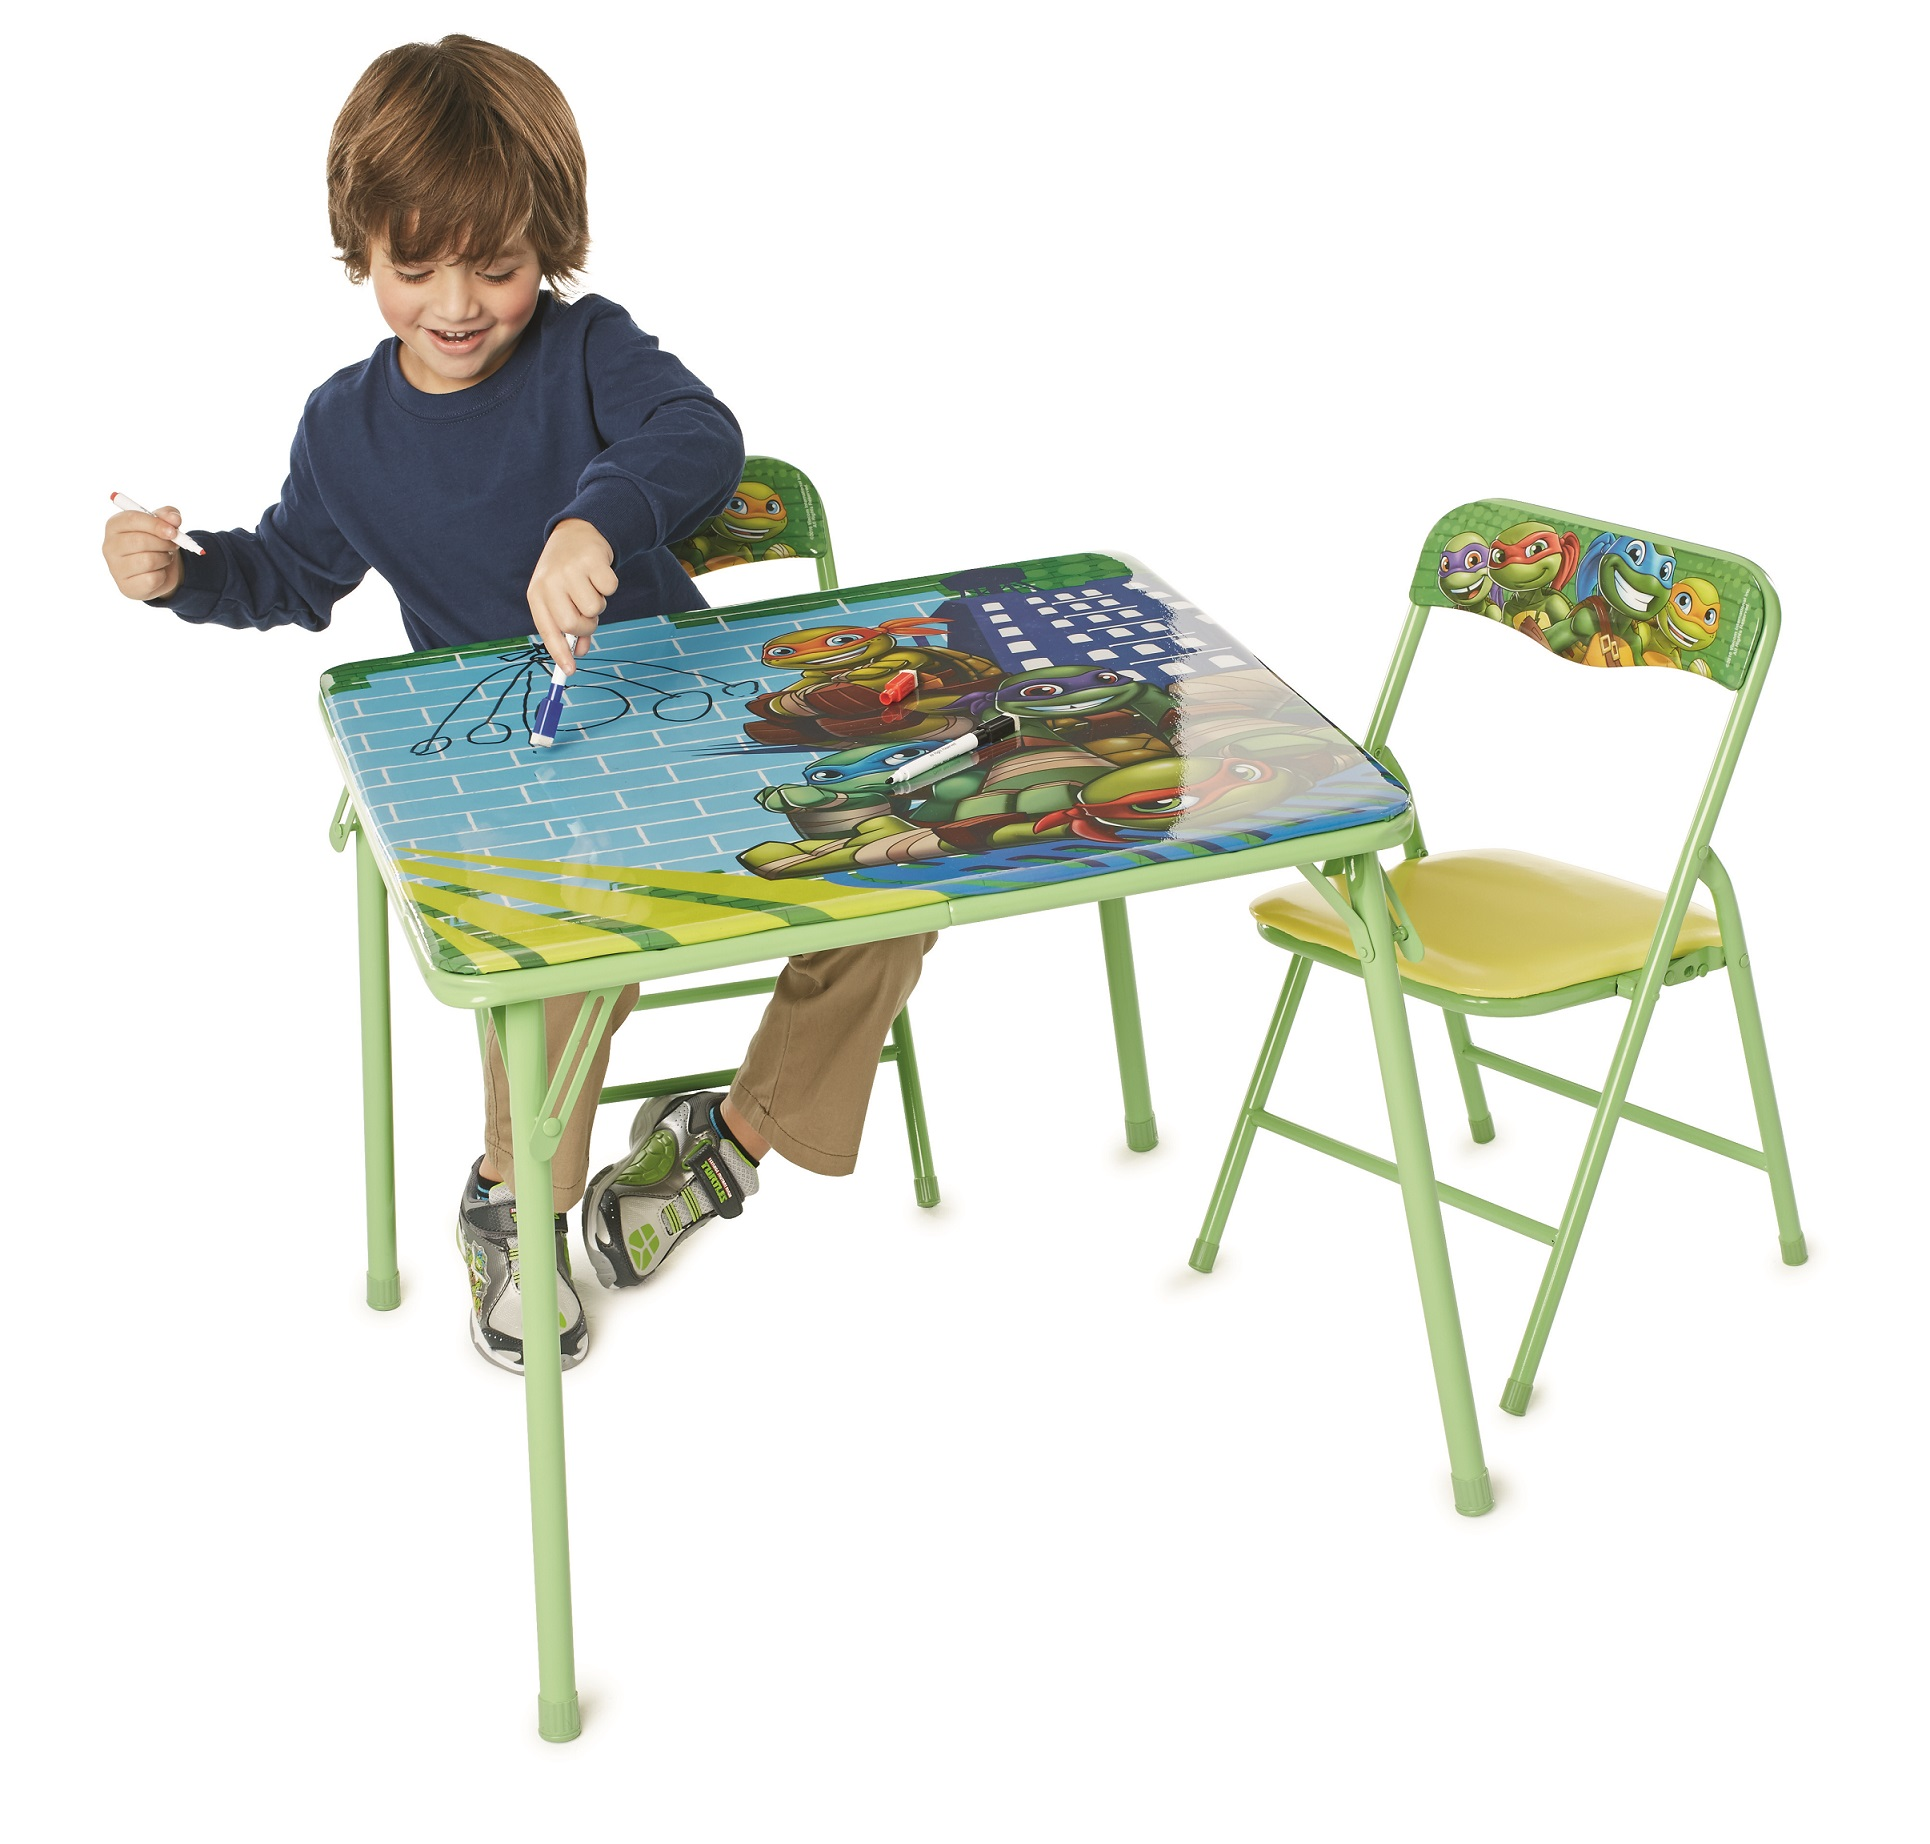 TMNT Ultimate Heroes Erasable Activity Table W/ 3 Dry-Erase Markers